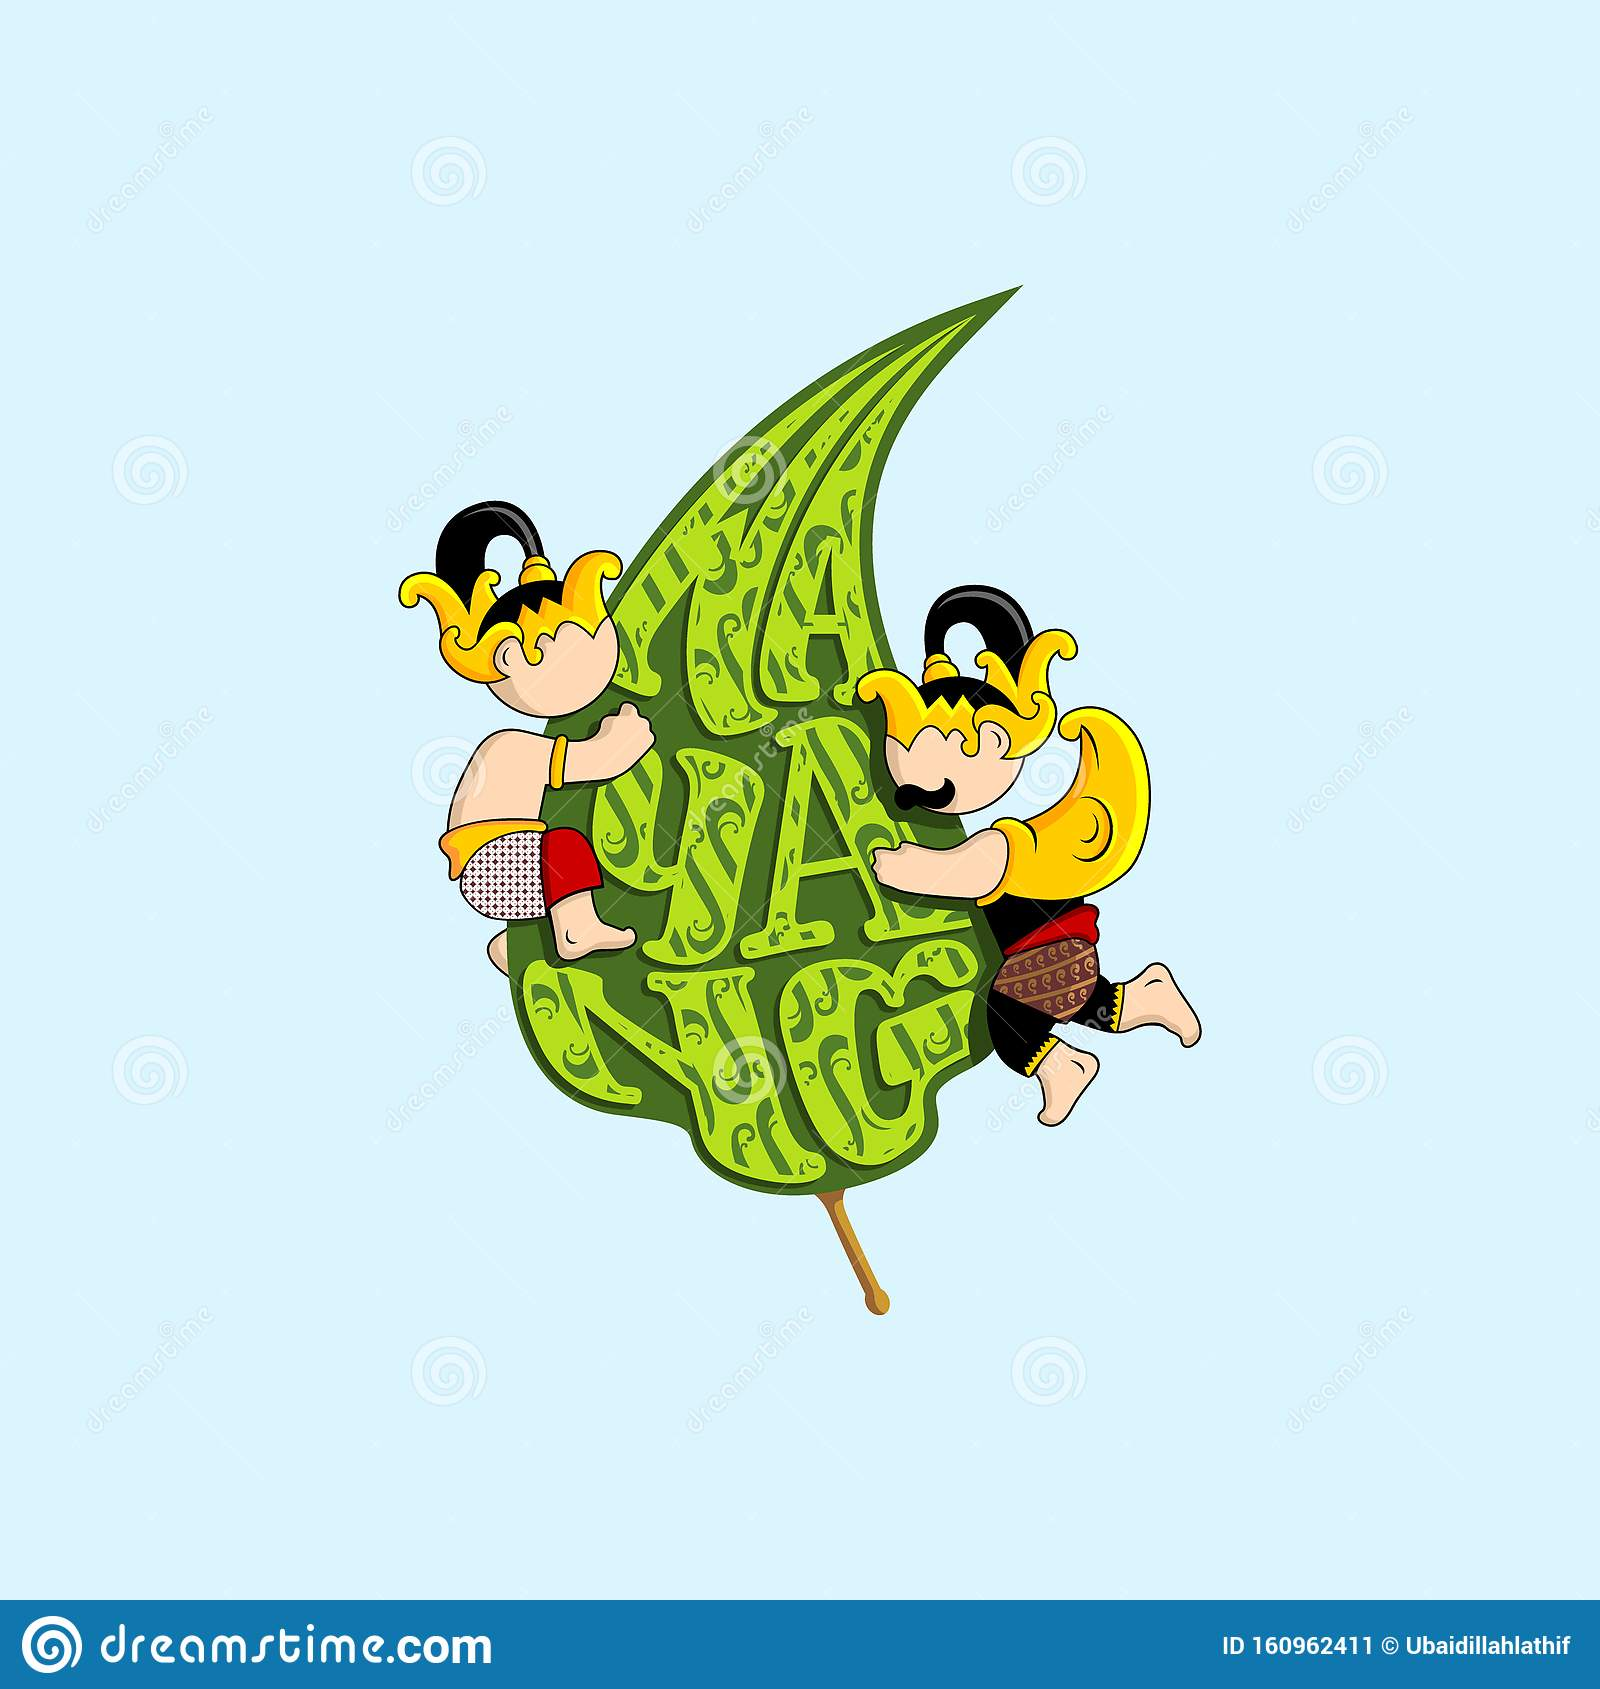 Wayang Bima Stock Illustrations 55 Wayang Bima Stock Illustrations Vectors Clipart Dreamstime